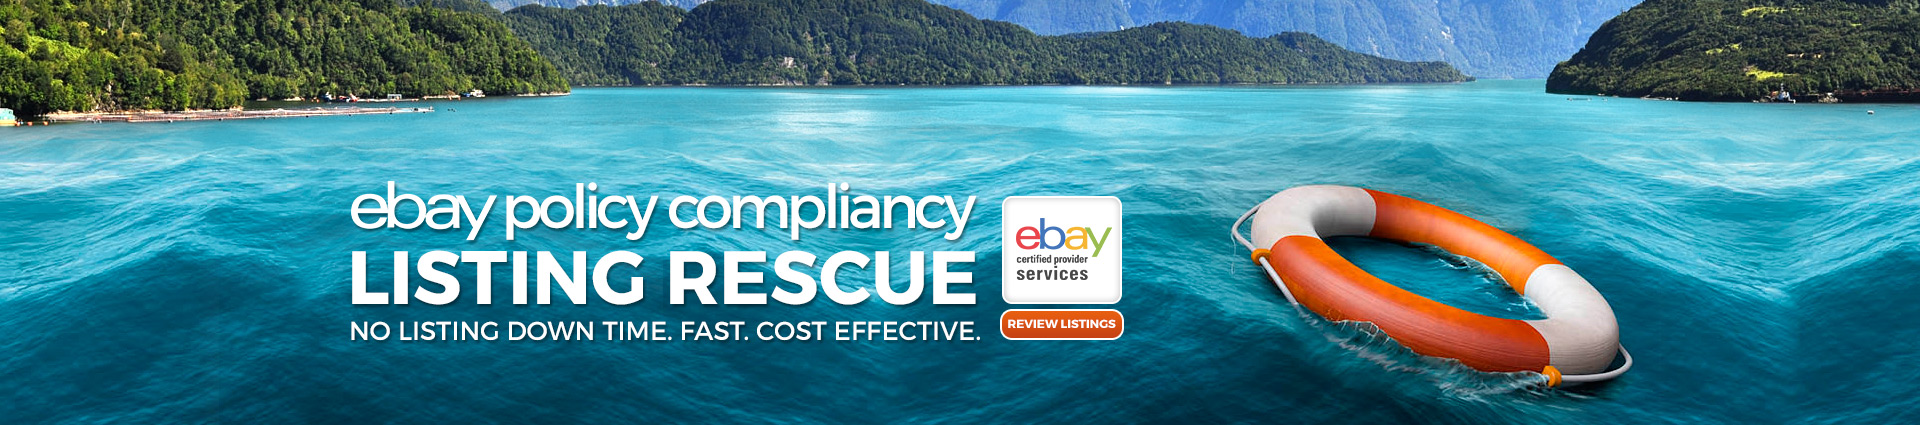 eBay Policy Listing Rescue: No Listing Downtime. Fast. Cost Effective